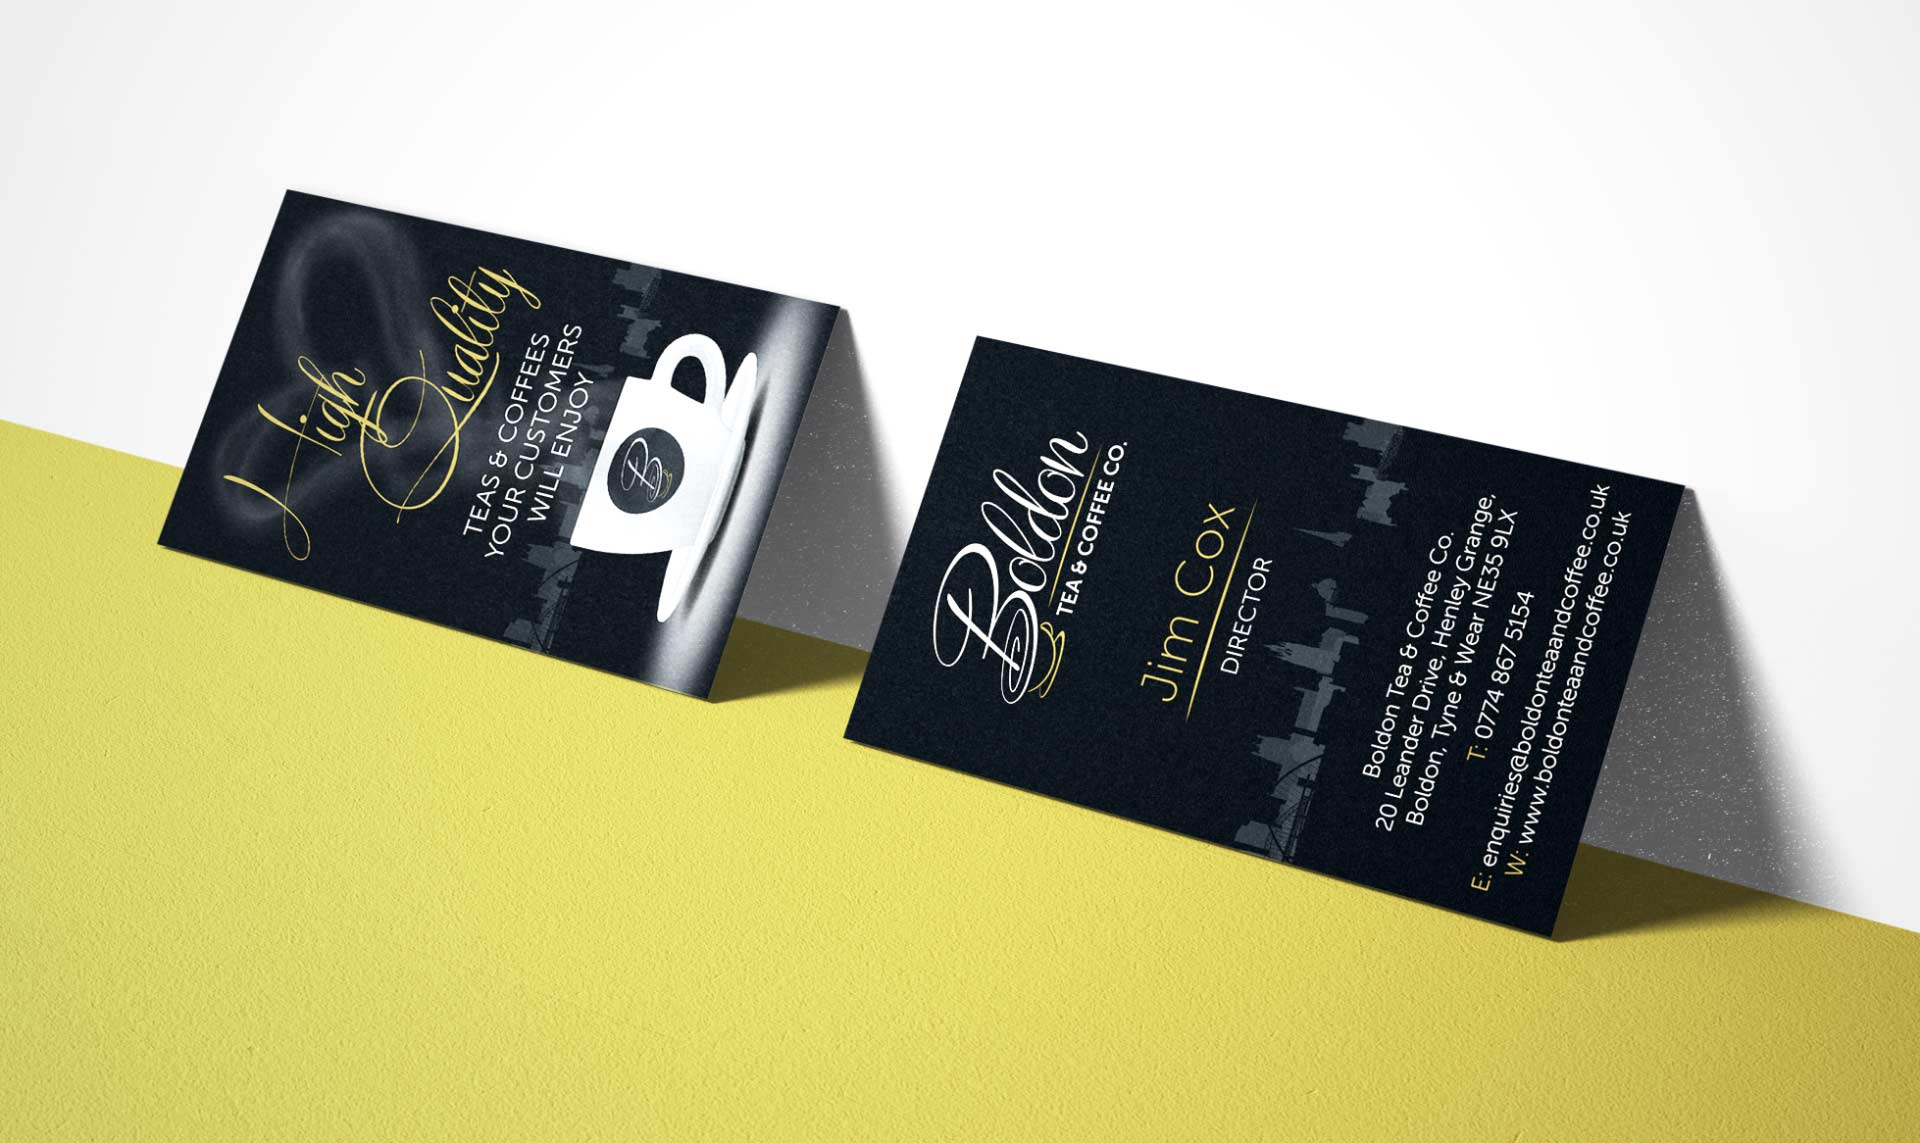 Boldon Tea and Coffee Business Card Design